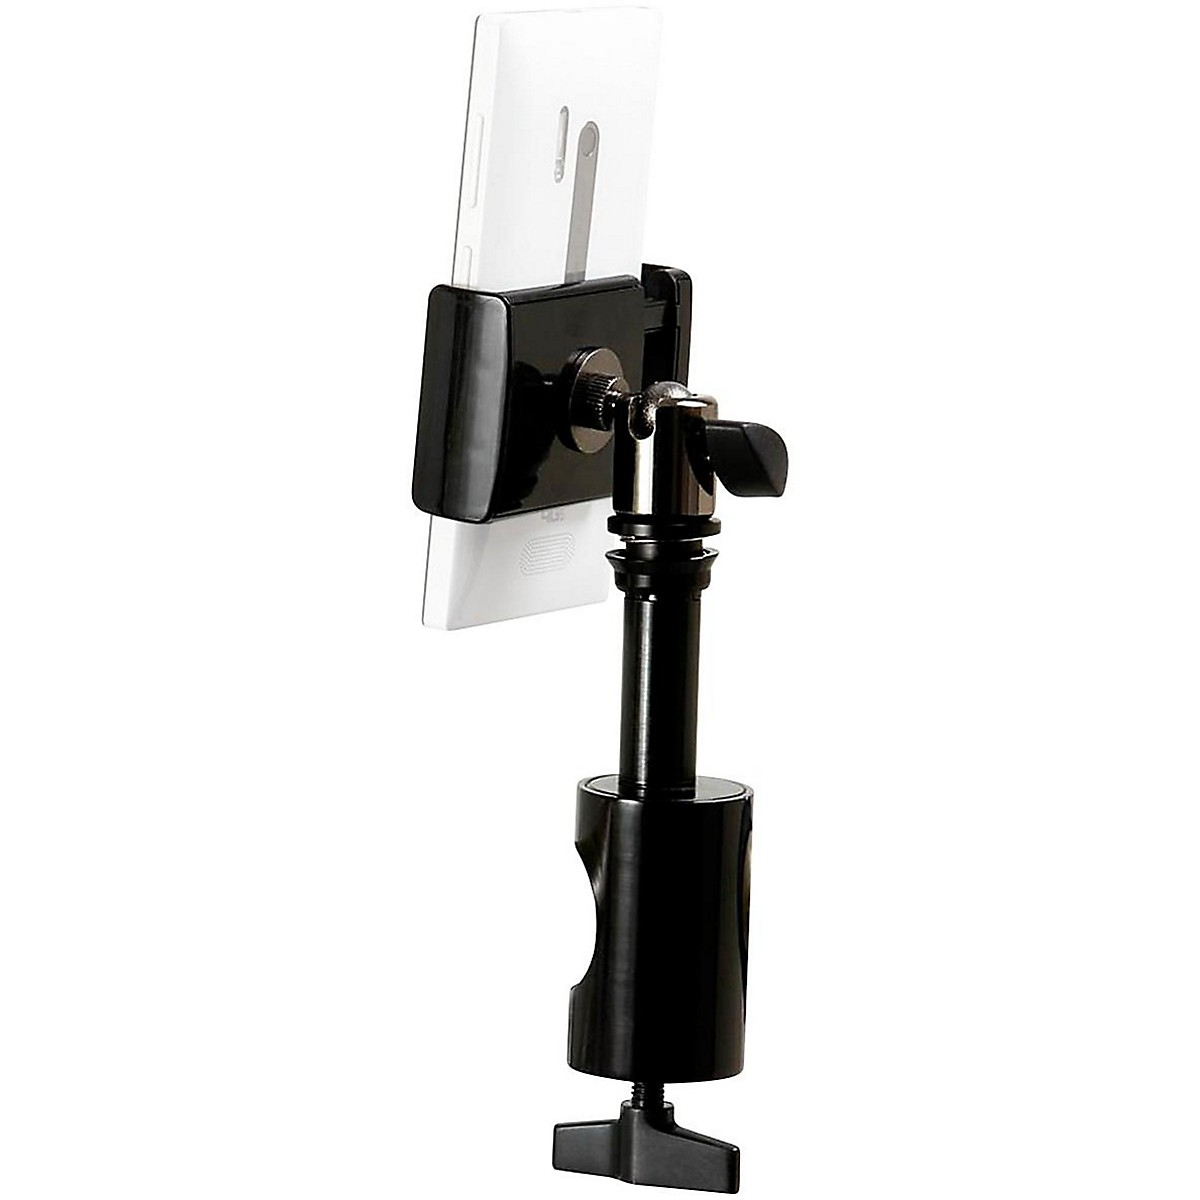 On-Stage U-Mount TCM1901 Grip-On Universal Device Holder with Round Clamp